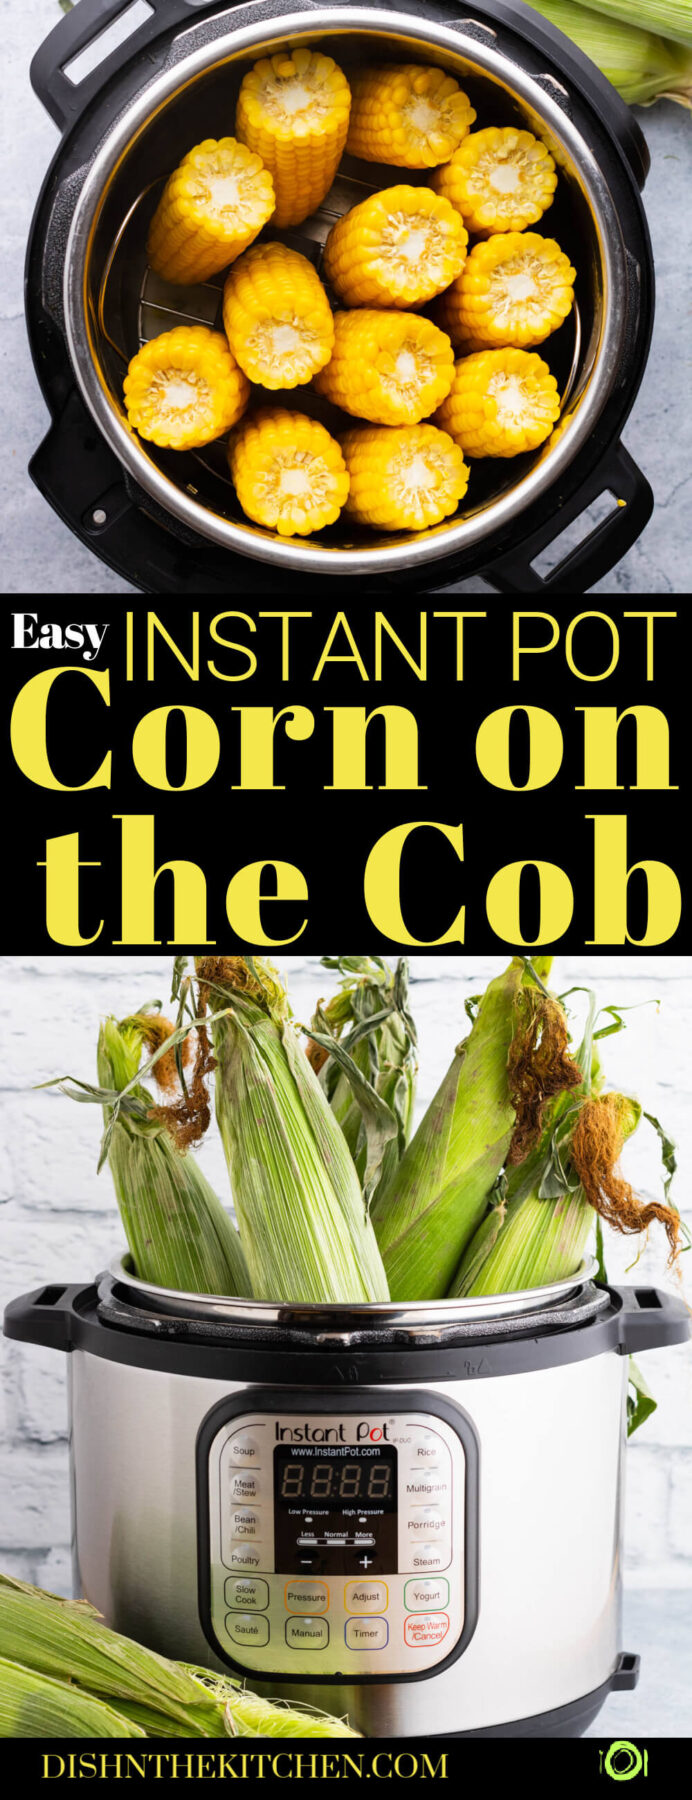 Pinterest image featuring cobs of corn in an Instant Pot.